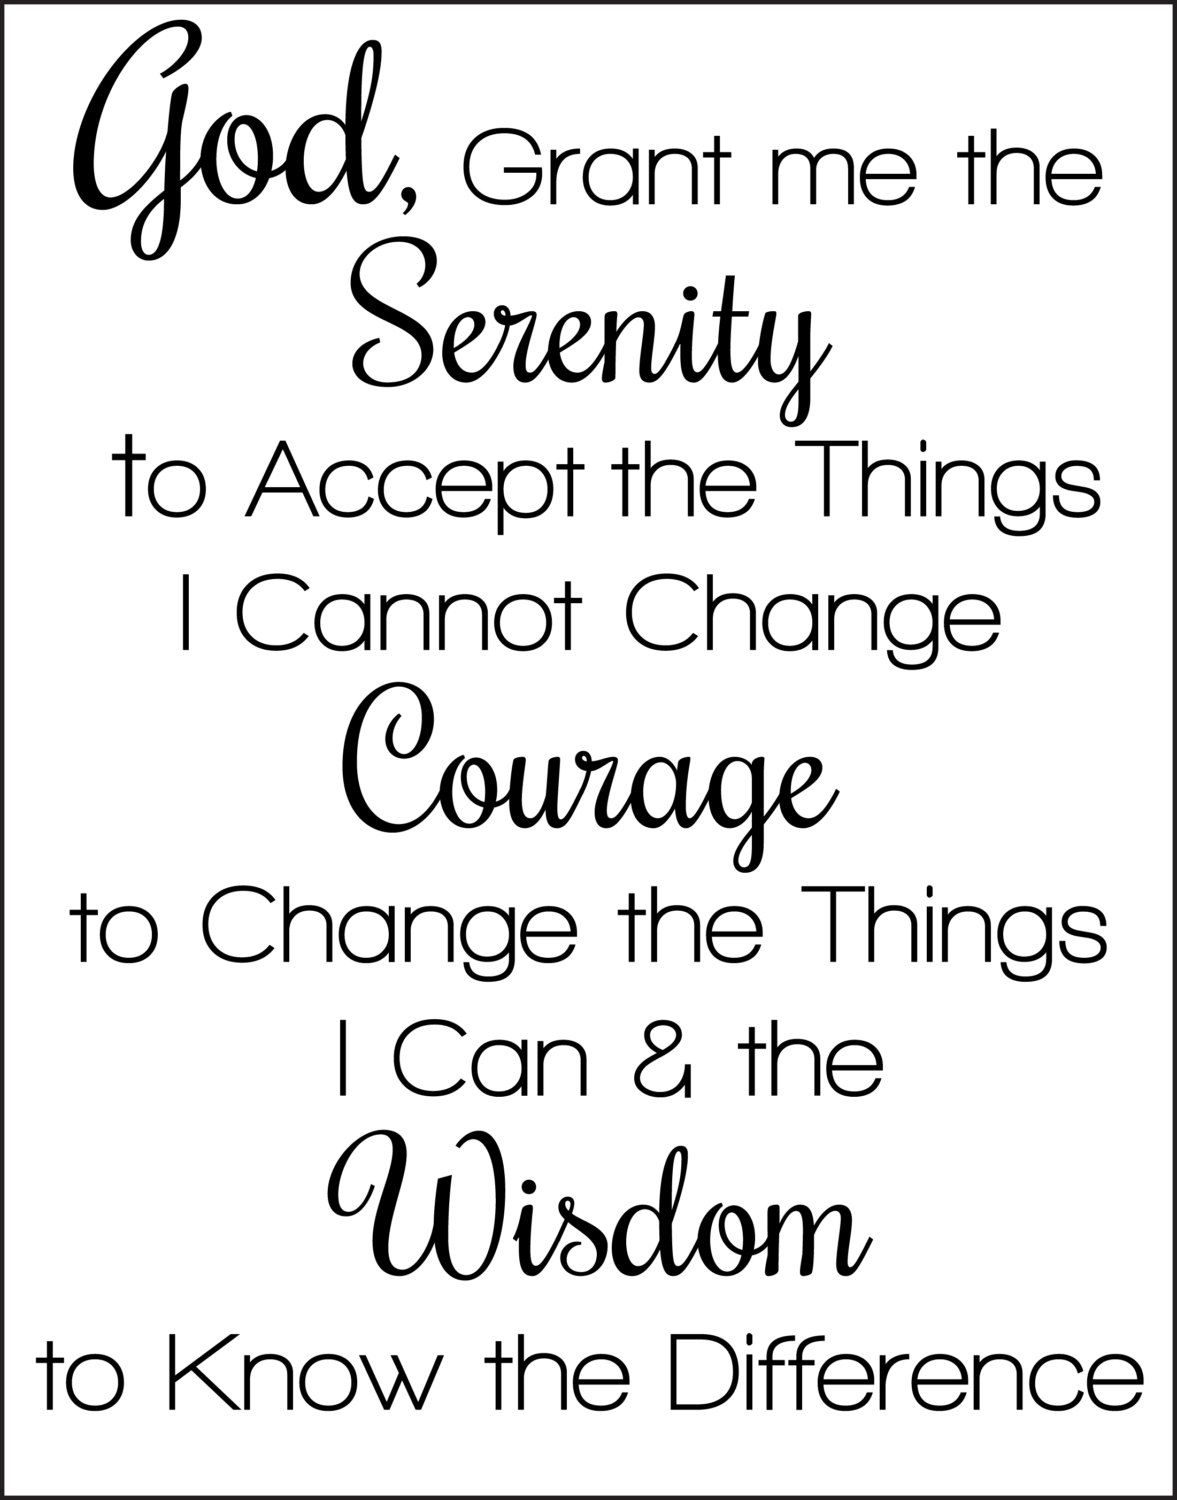 photo regarding Free Printable Serenity Prayer called Serenity Prayer - Small Edition Lovesvg - Absolutely free Printable